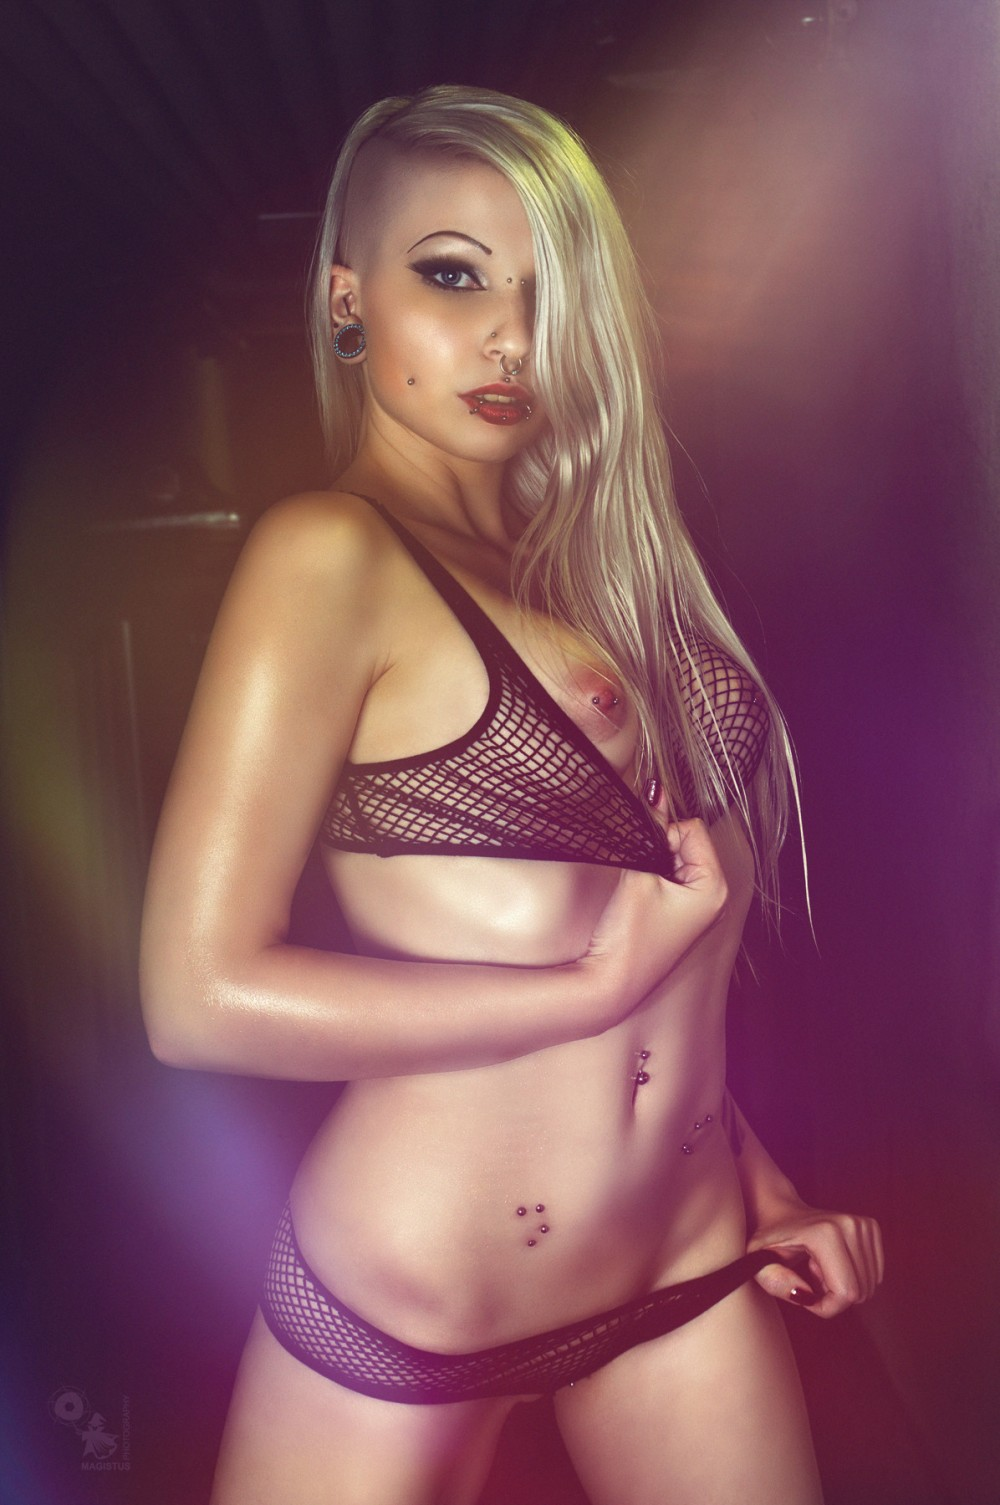 Lilith in the Dark - Super hot and sexy blonde model is posing in the dark presenting her naked pierced tits and tight body. - © by Magistus